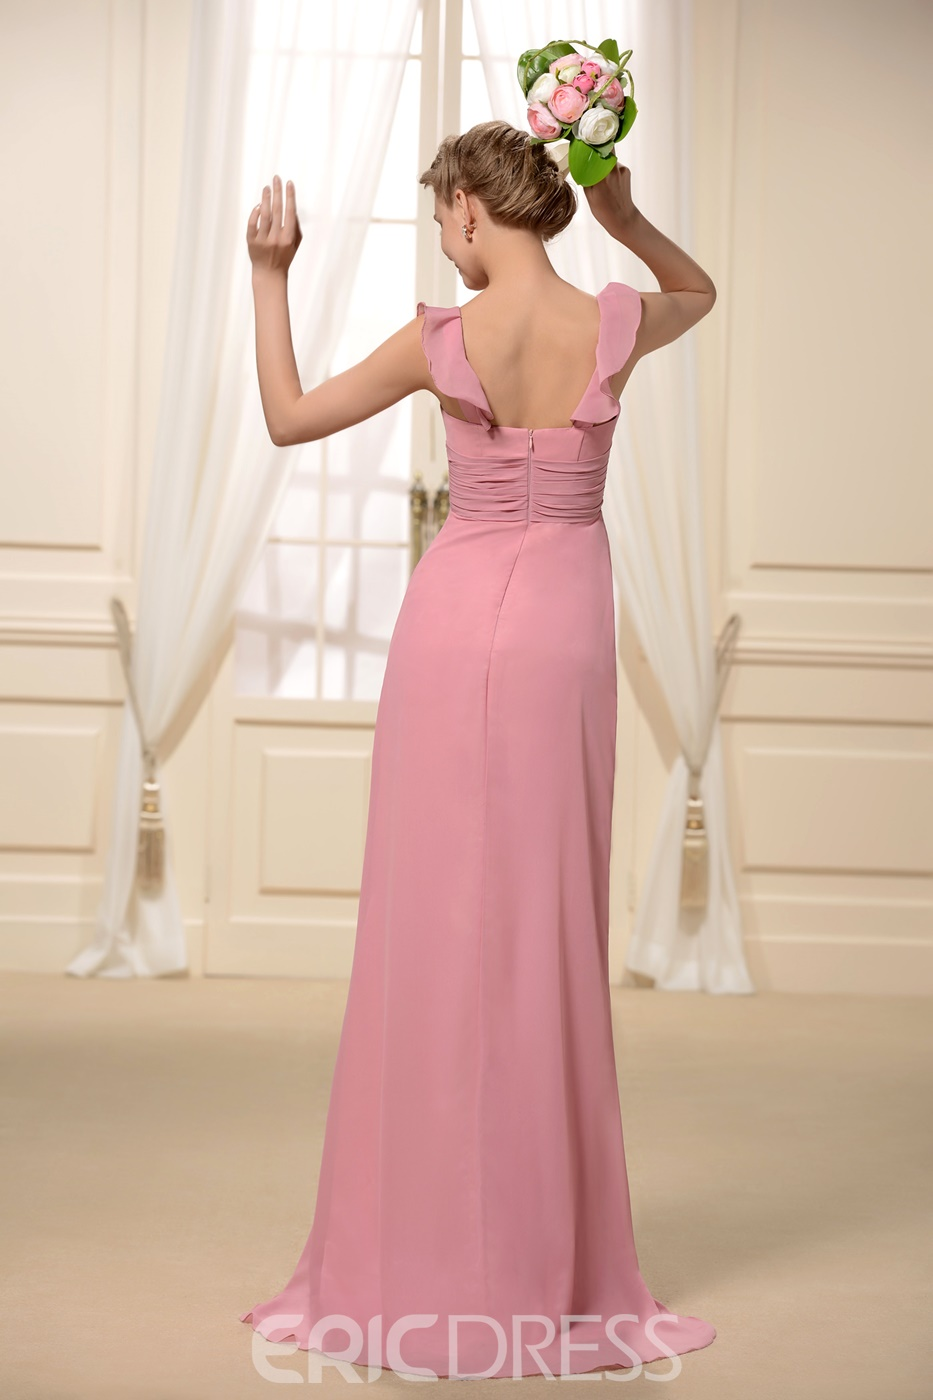 Spice Radiant Ruffled V-Neck Sleeveless Floor-Length Bridesmaid Dress